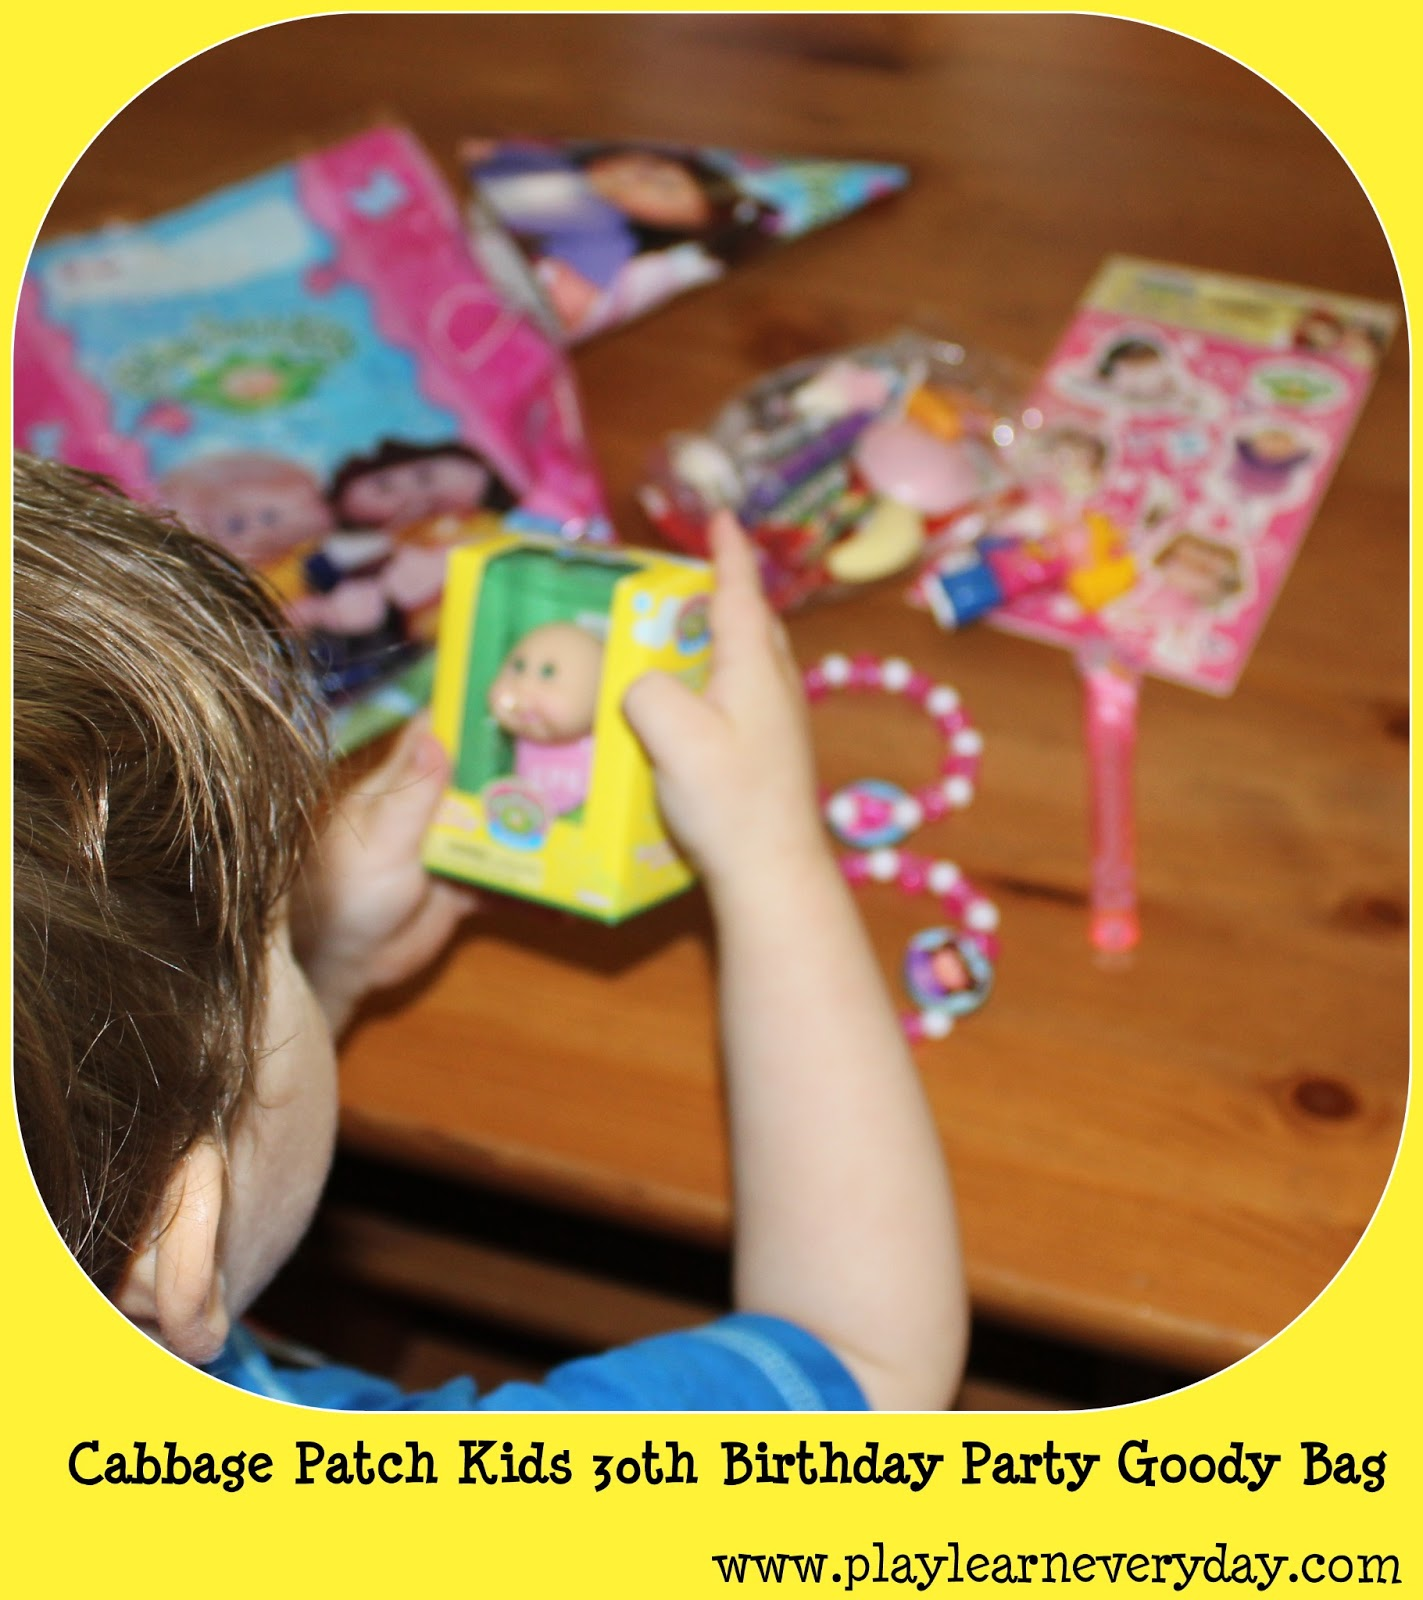 Cabbage Patch Kids 30th Birthday Party Goody Bag